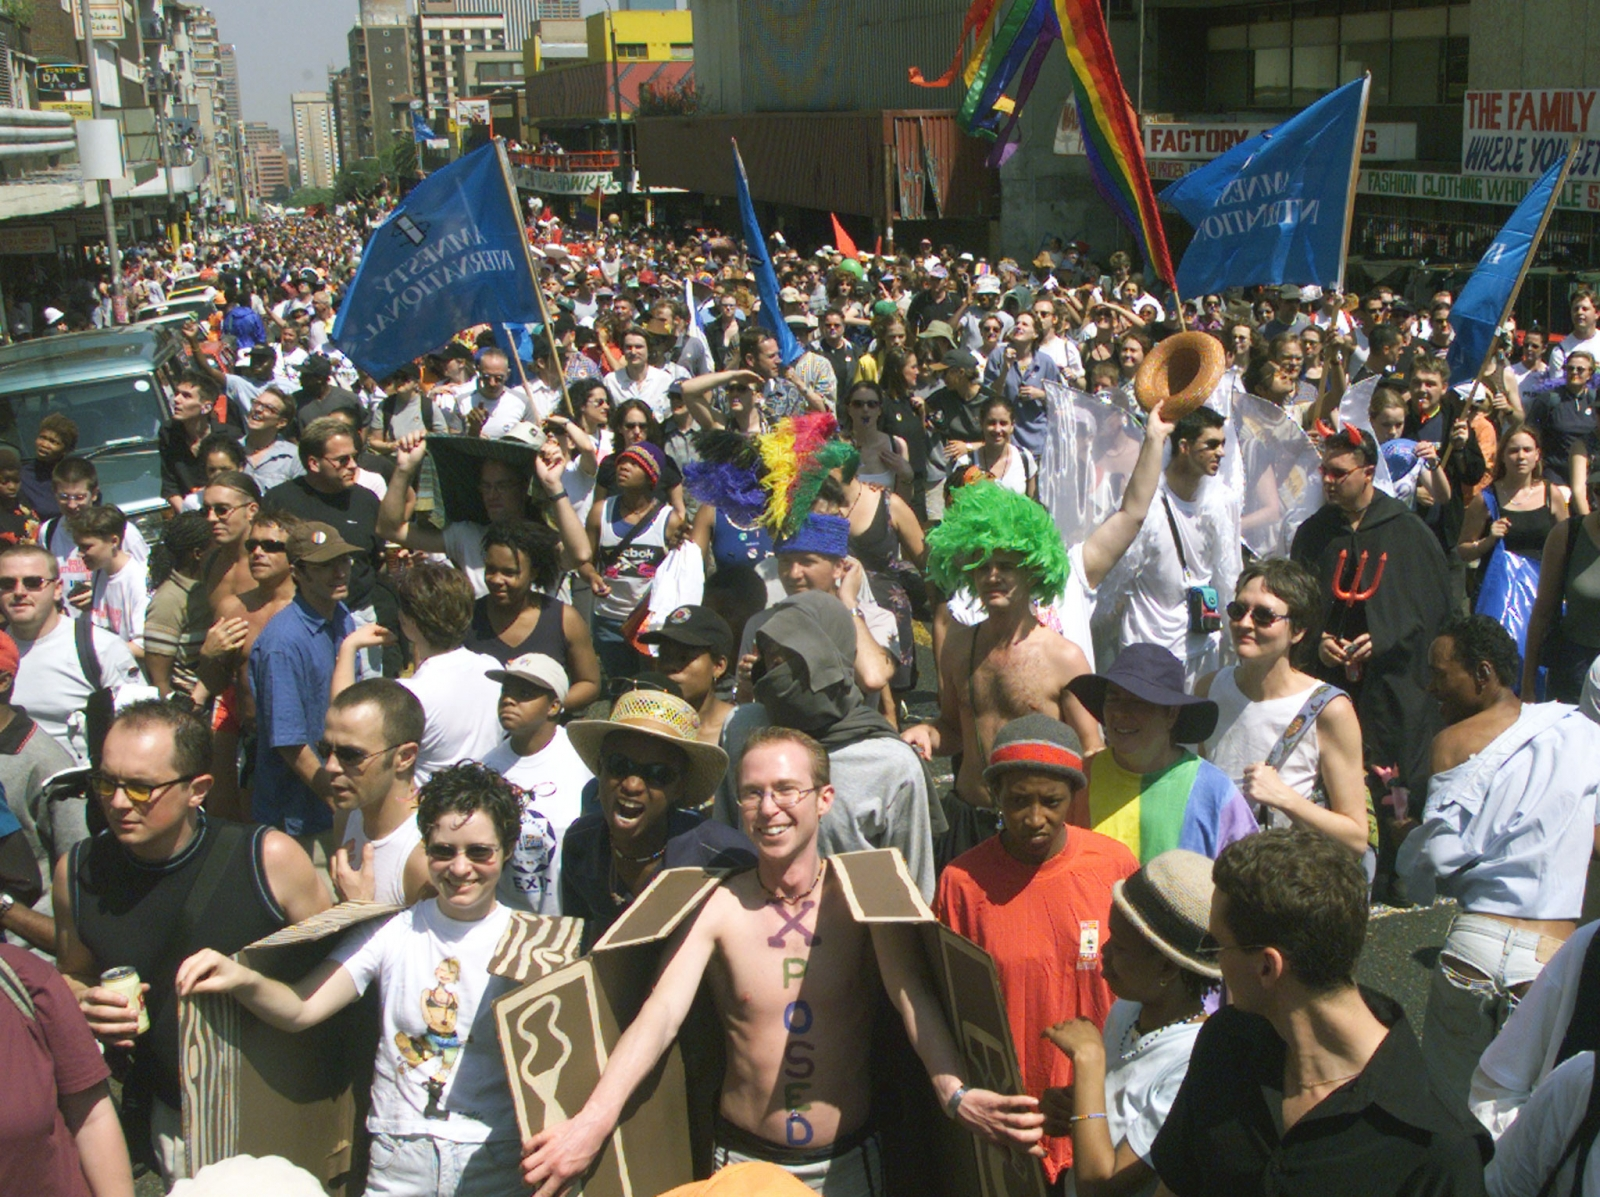 Bisexuals, gays lesbians and other allies of diversity march through the streets of downtown Johannesburg on 25 September, 1999